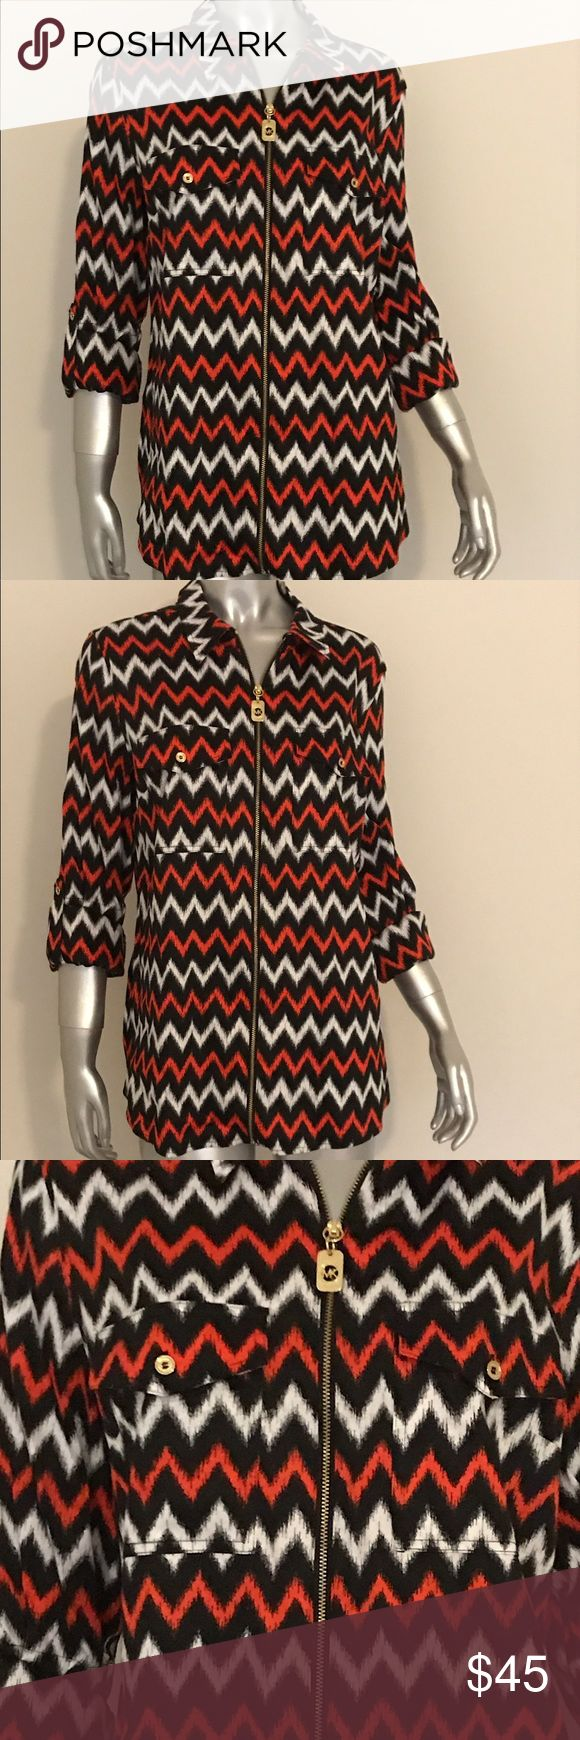 Michael Kors Chevron Shirt NWT Stunning Michael Kors Chevron print top. Gold zipper with Michael Kors Logo down front. Can be worn 3/4 sleeve or long sleeve. New with tags $130. Michael Kors Tops Blouses